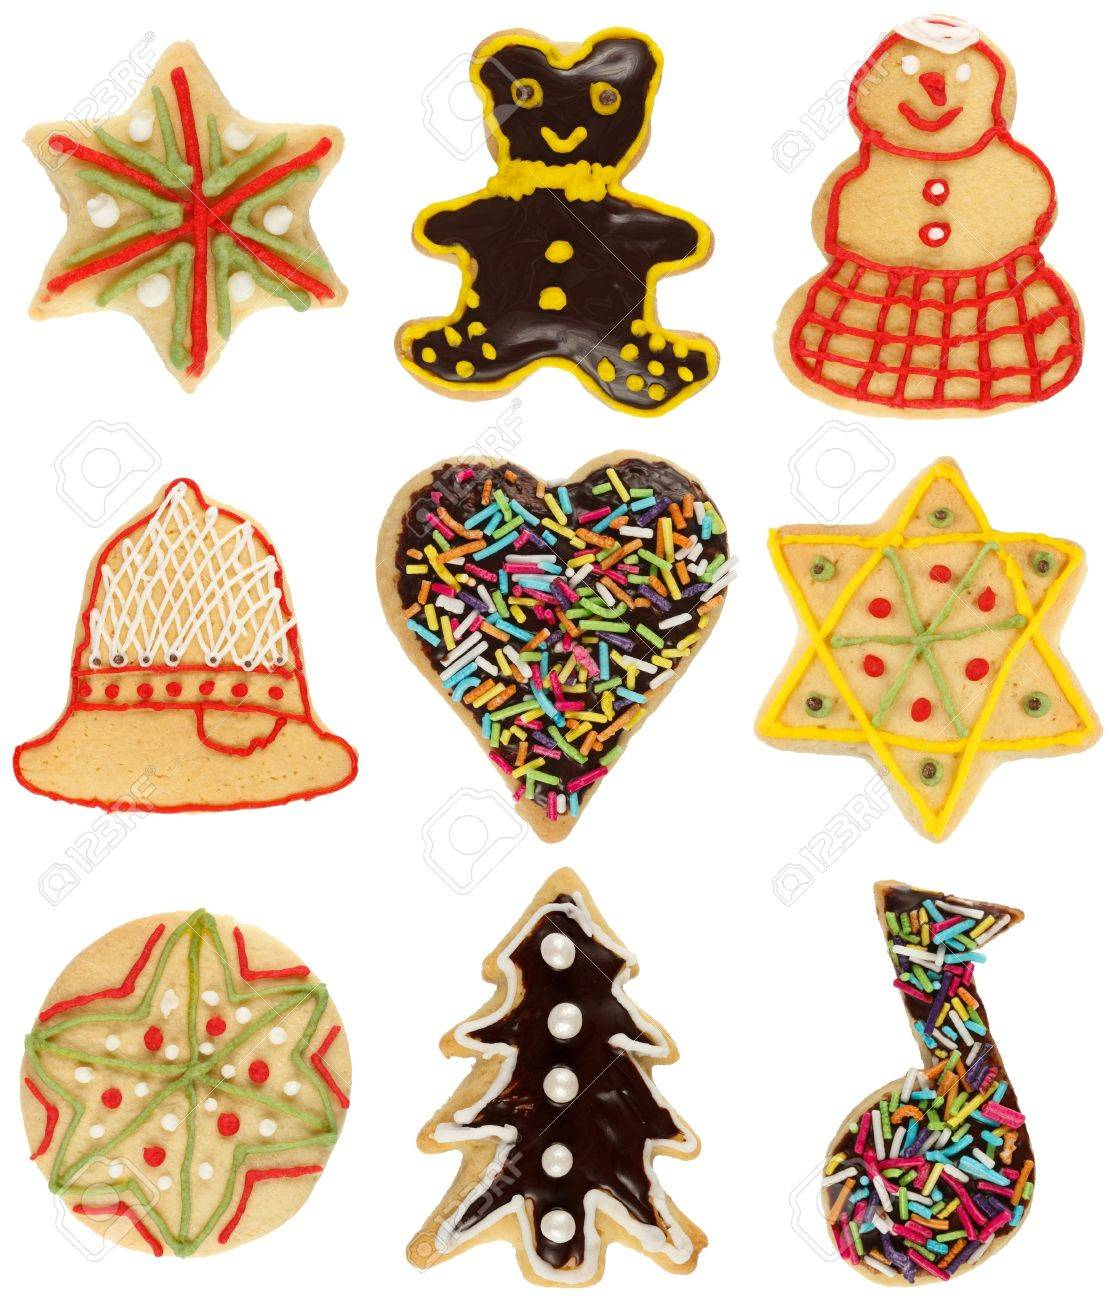 Various handmade decorated Christmas cookies, isolated on white Stock Photo - 14445193